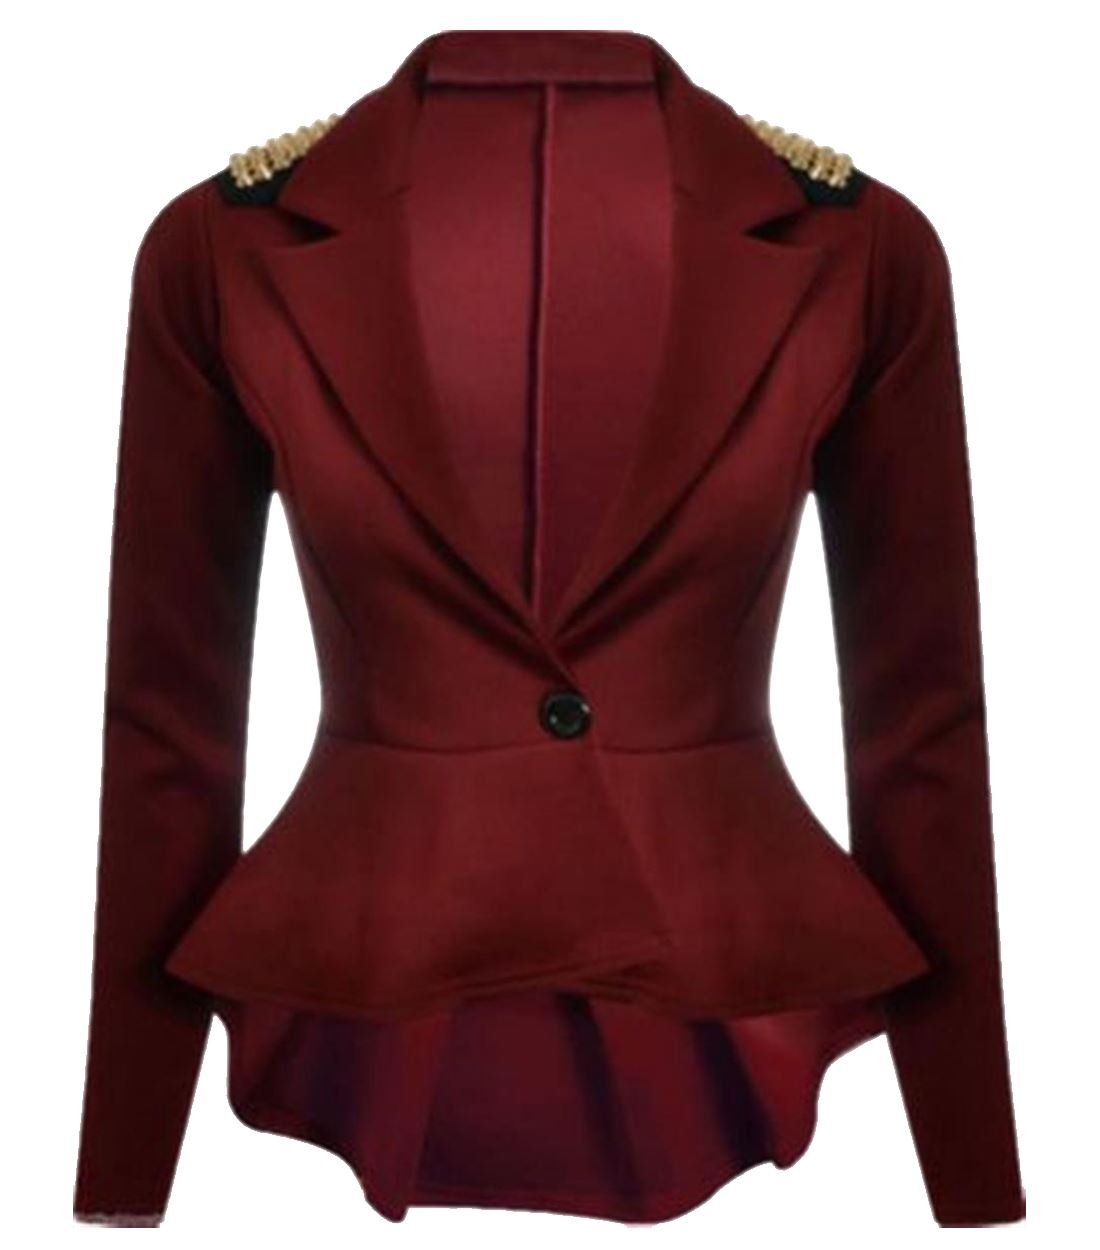 New Womens Spikes Studded Crop Peplum Frill Blazer Single Button ...